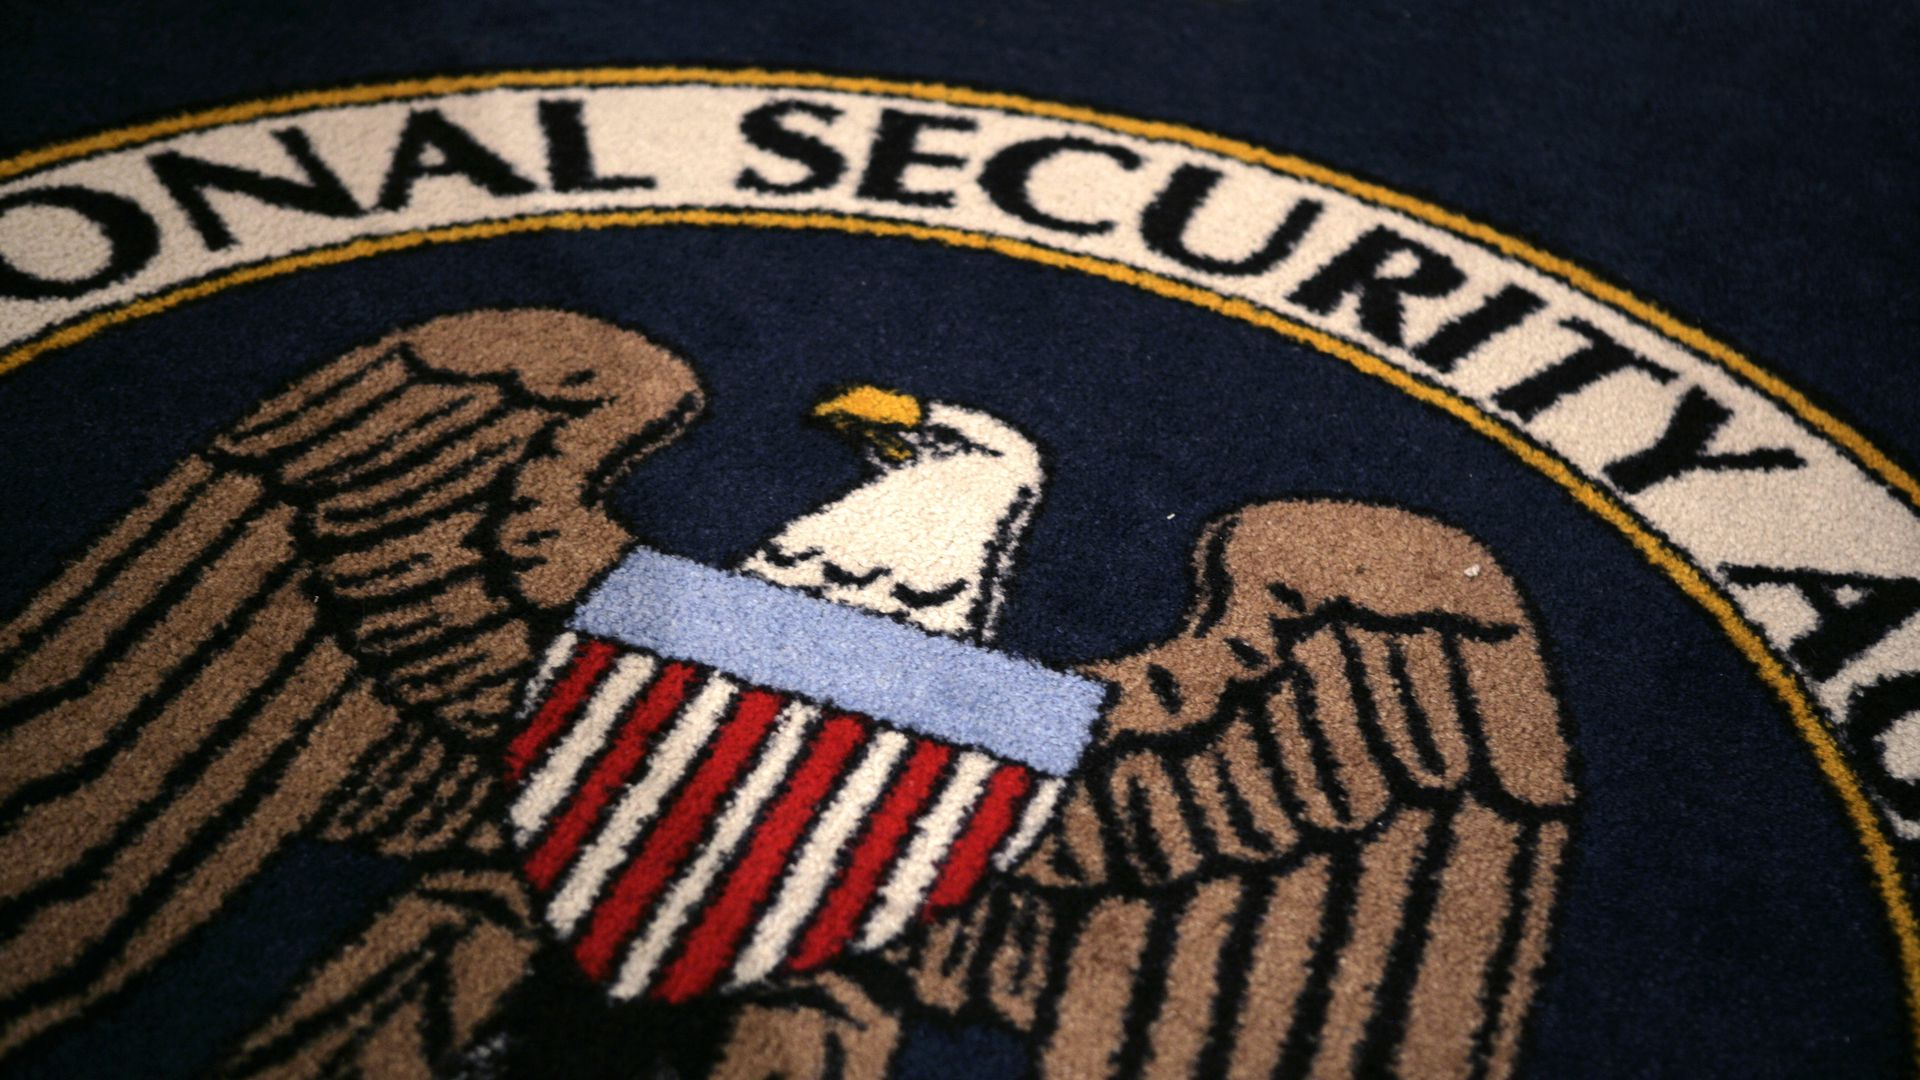 NSA logo on rug.